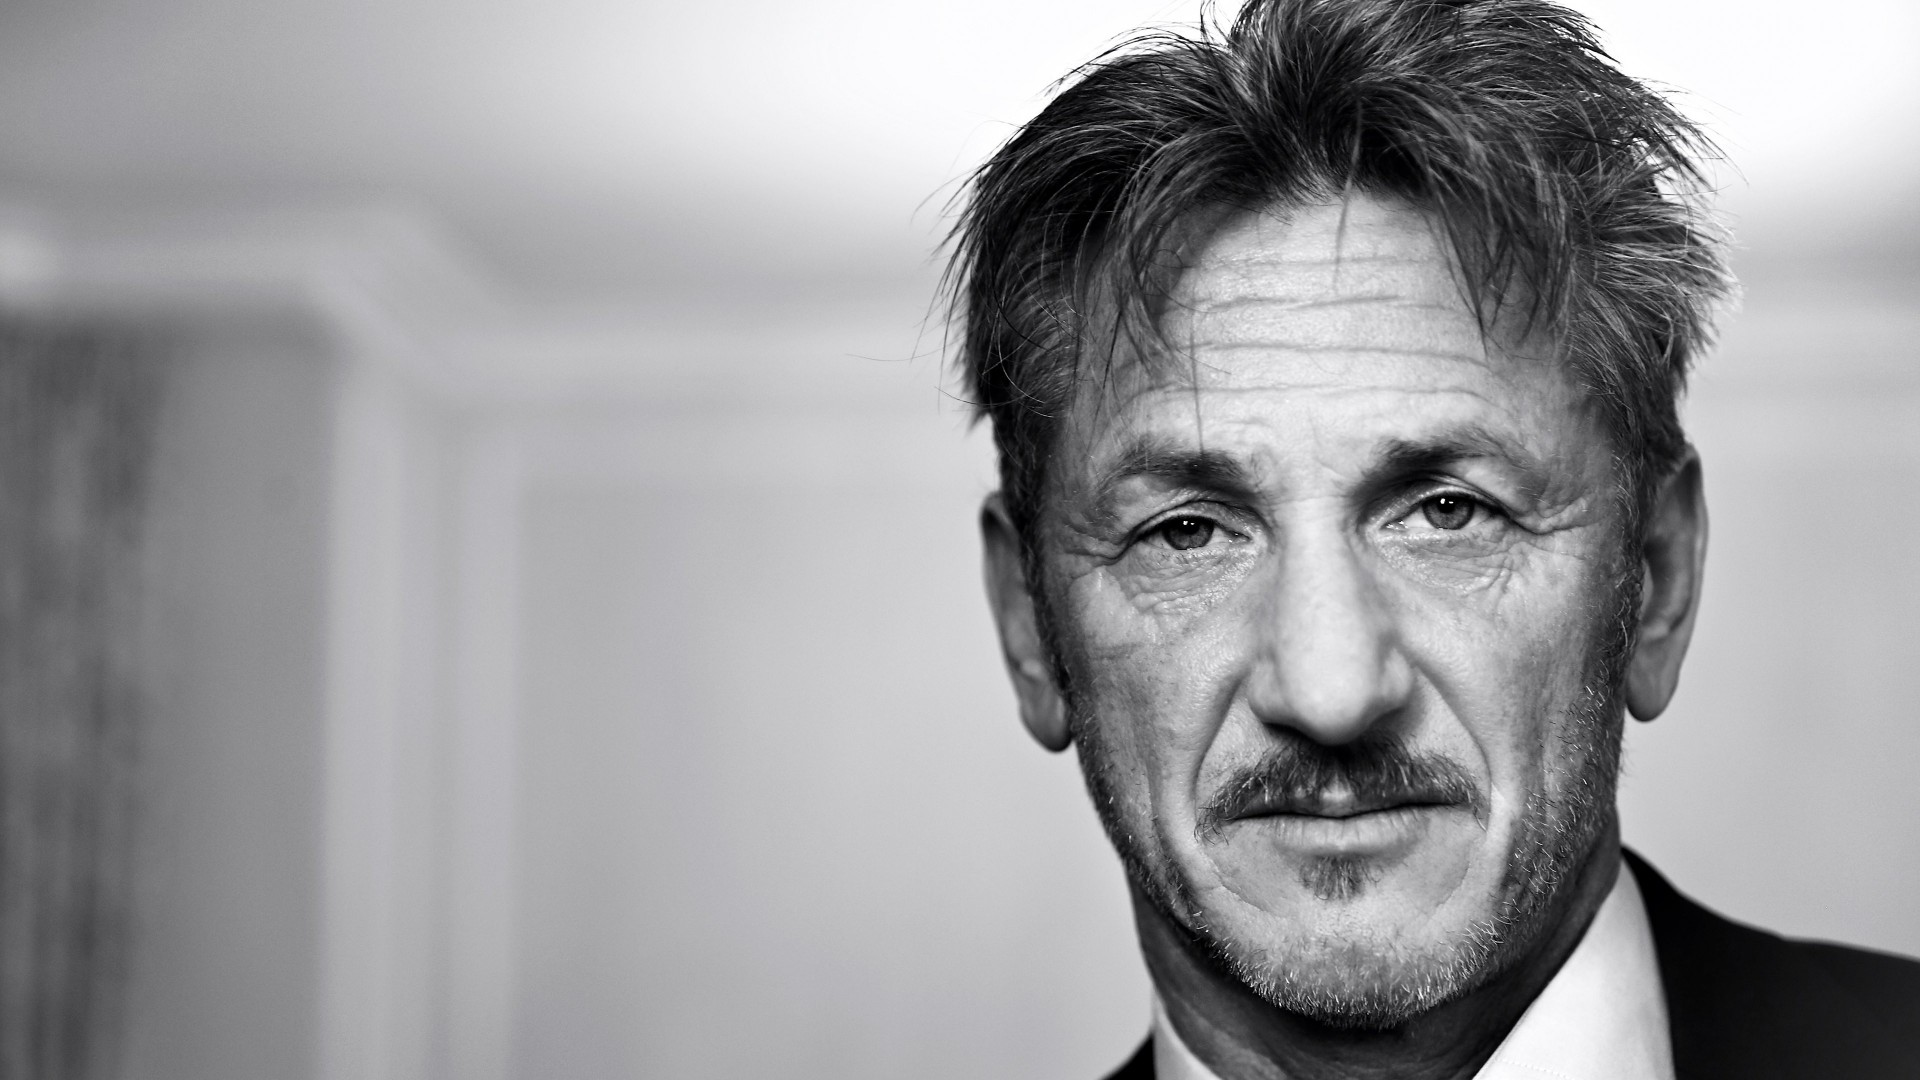 Sean Penn Portrait in Black & White Wallpaper for Desktop 1920x1080